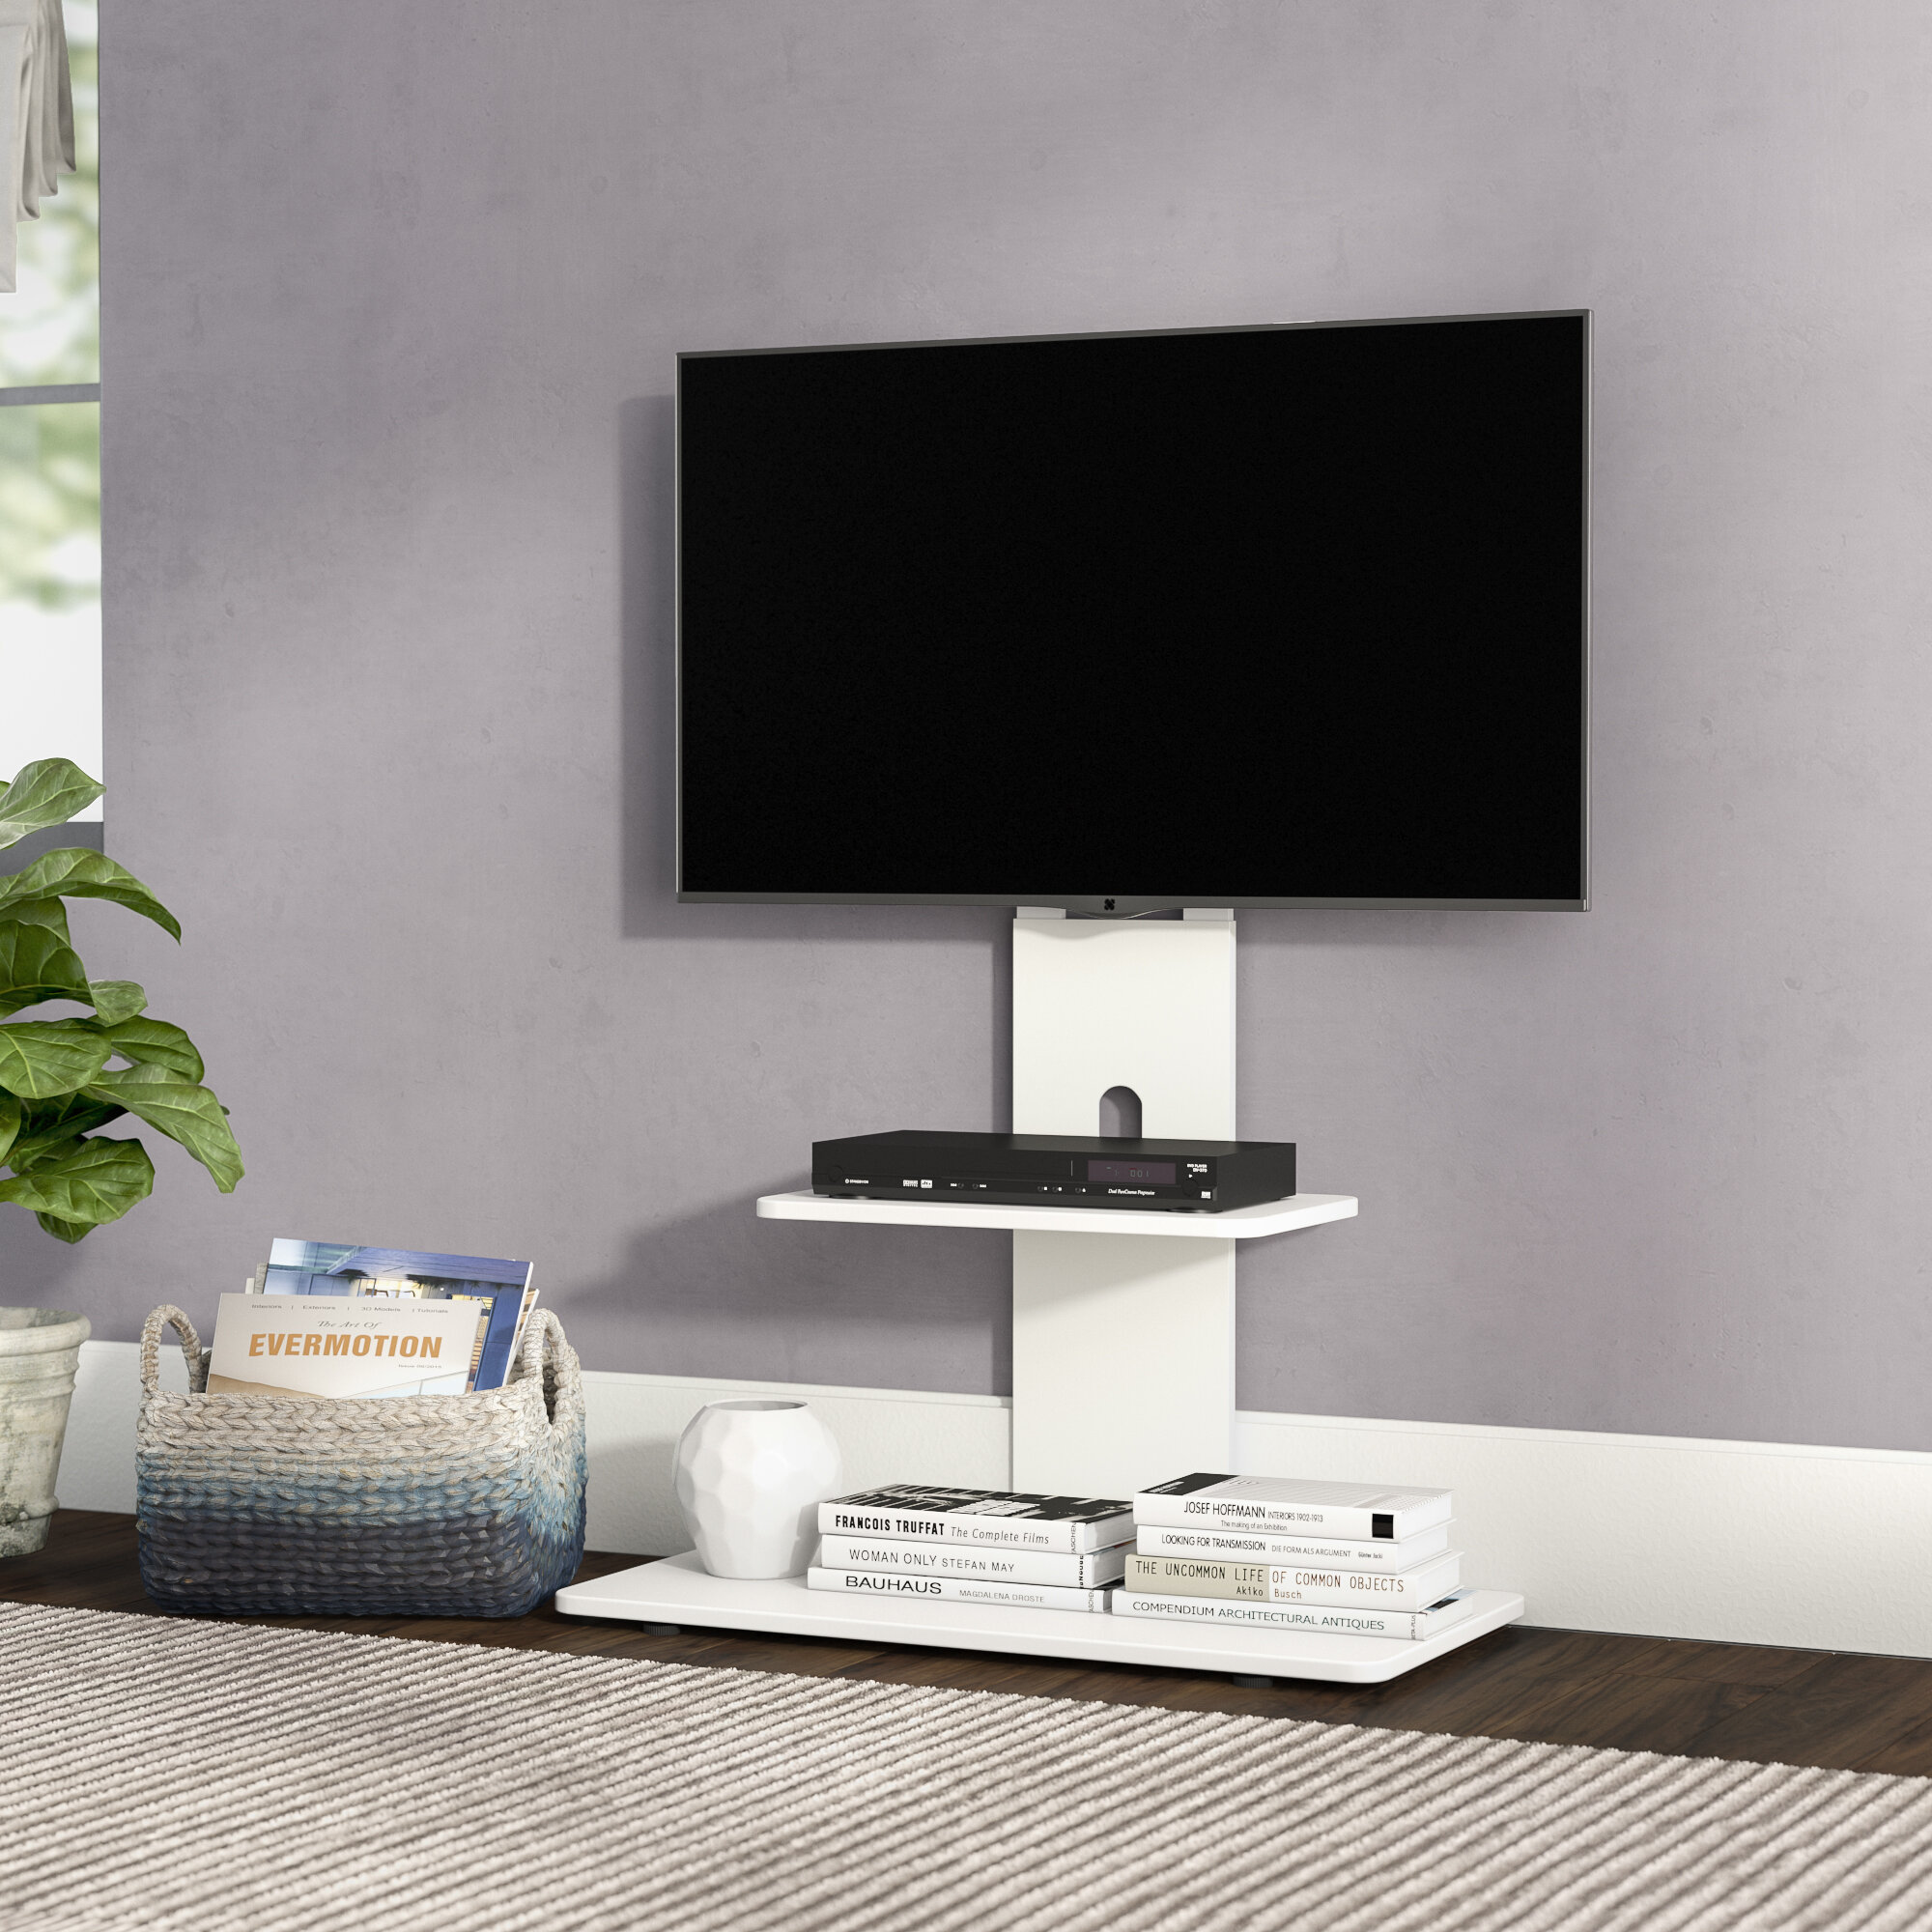 Flat Panel Mount Tv Stands Youll Love Wayfair Multi Room Distribution System On Wall Wiring Diagram Quickview